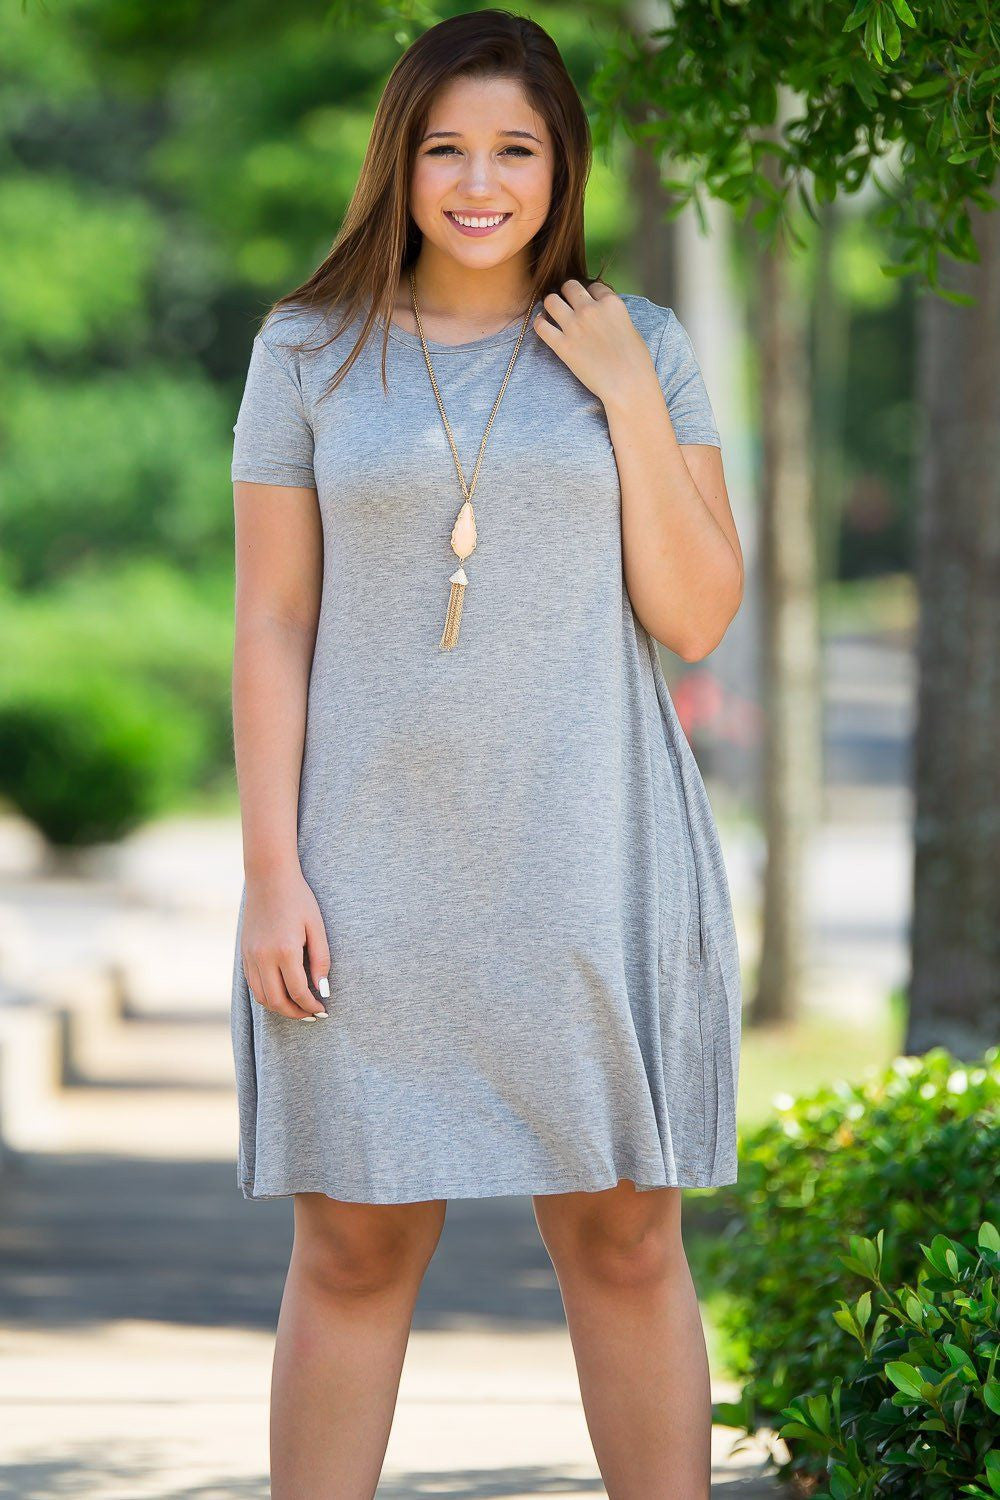 Piko Short Sleeve Swing Dress - Heather Grey - Piko Clothing